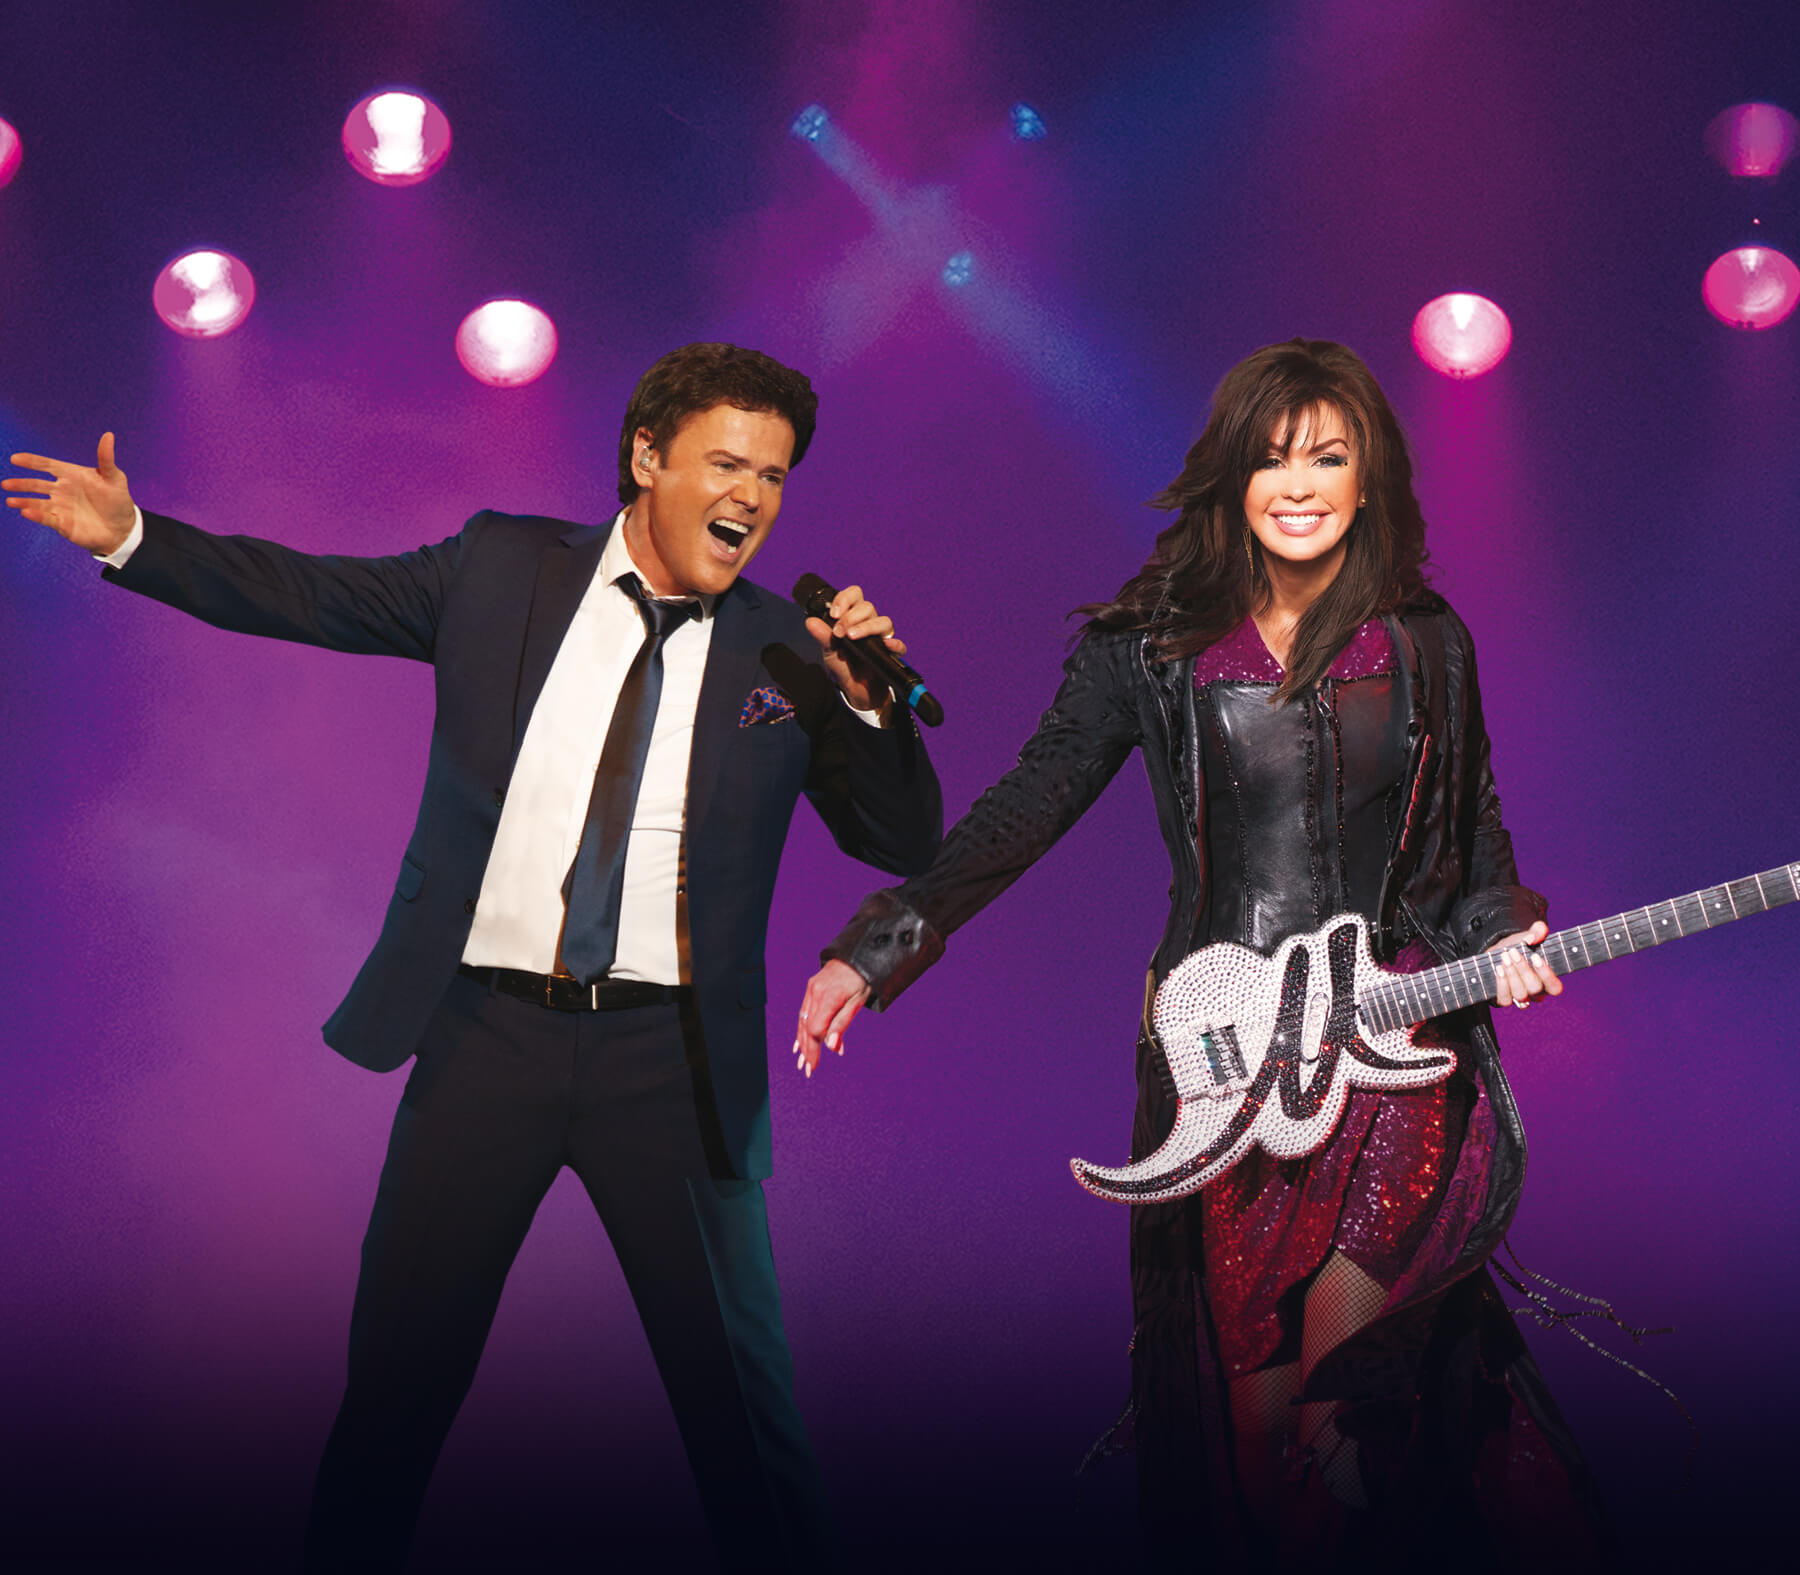 Donny And Marie Christmas Tour 2020 Donny and Marie Tour